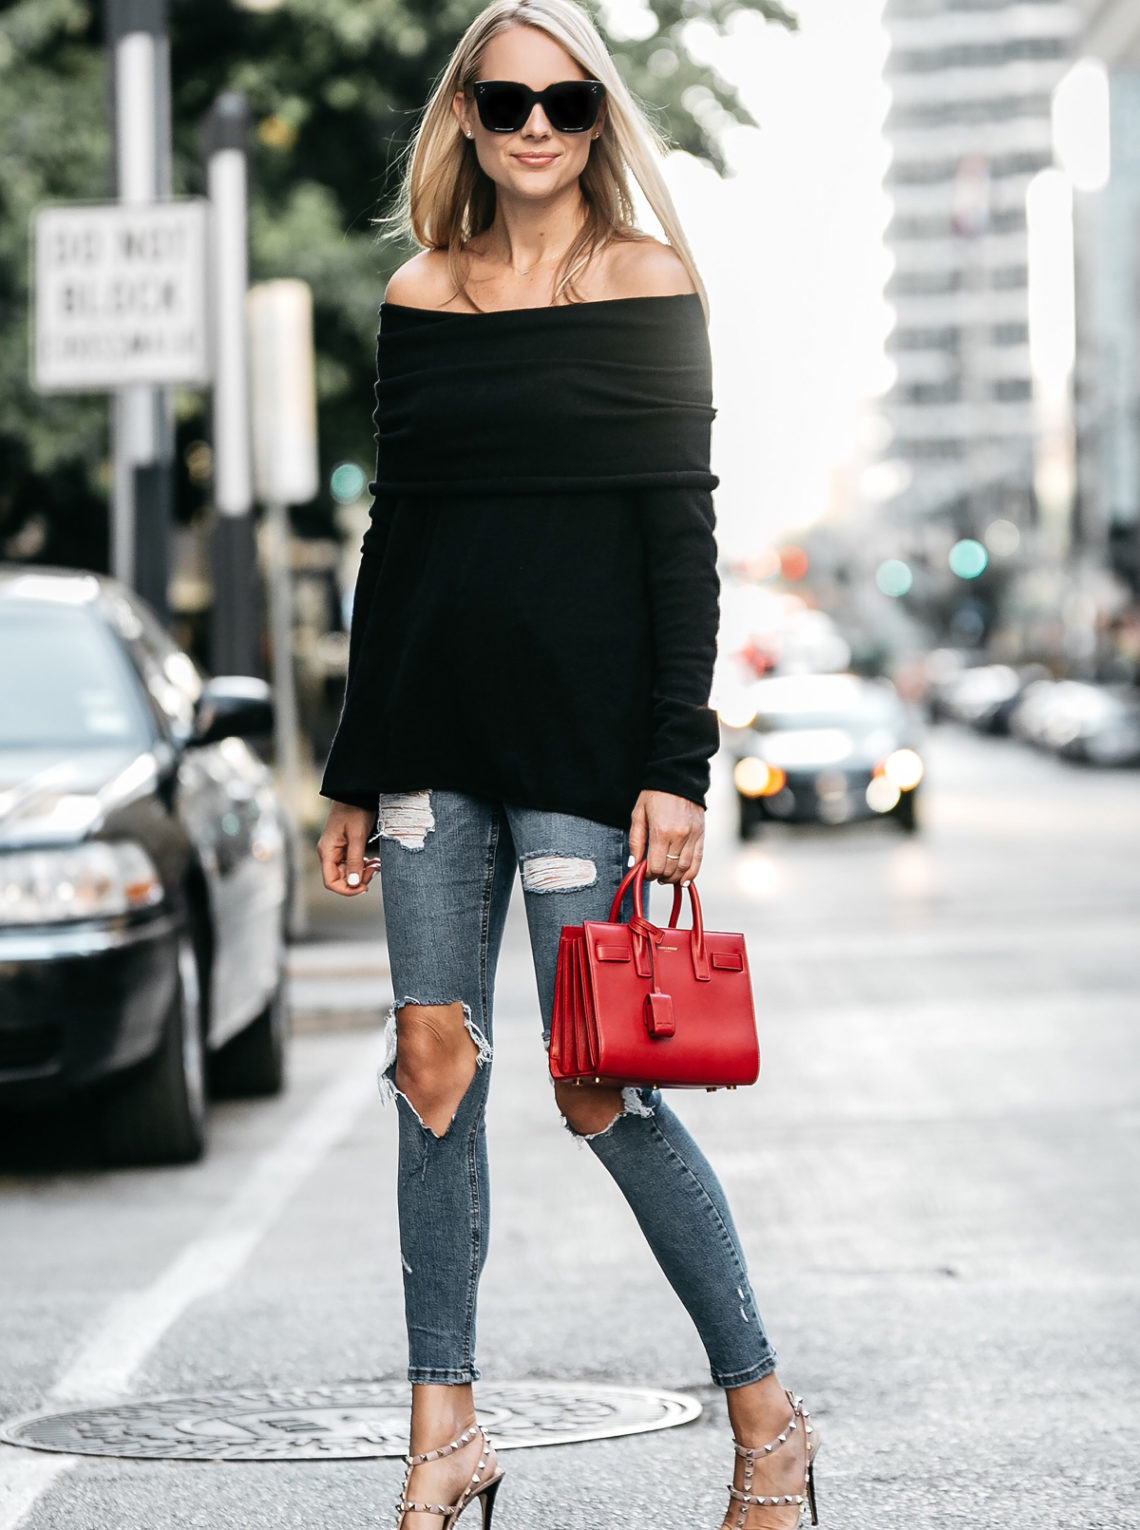 Blonde Woman Wearing Black off the shoulder Sweater Denim Ripped Skinny Jeans Valentino Rockstud Pumps Saint Laurent Red Sac De Jour Handbag Fashion Jackson Dallas Blogger Fashion Blogger Street Style